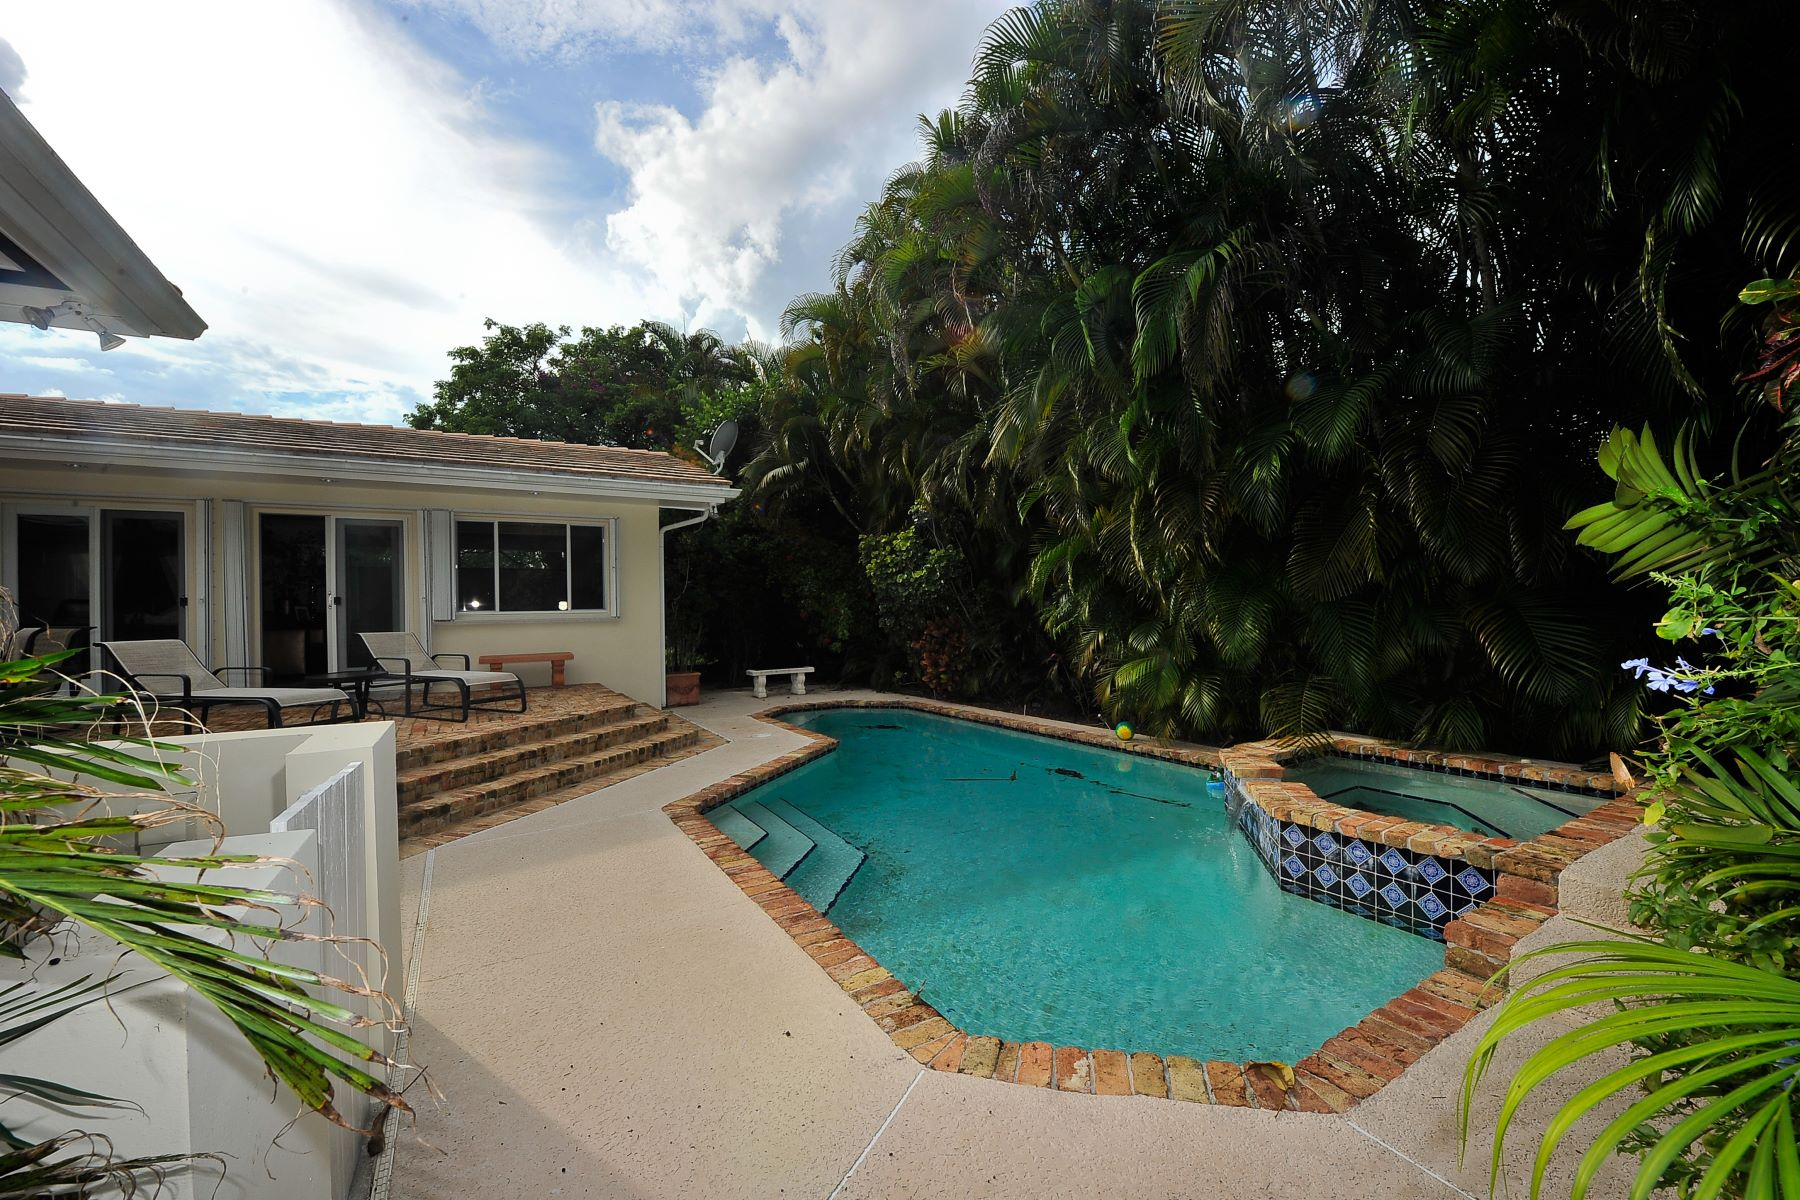 Single Family Home for Rent at 1425 Trillo Ave 1425 Trillo Ave Coral Gables, Florida 33146 United States